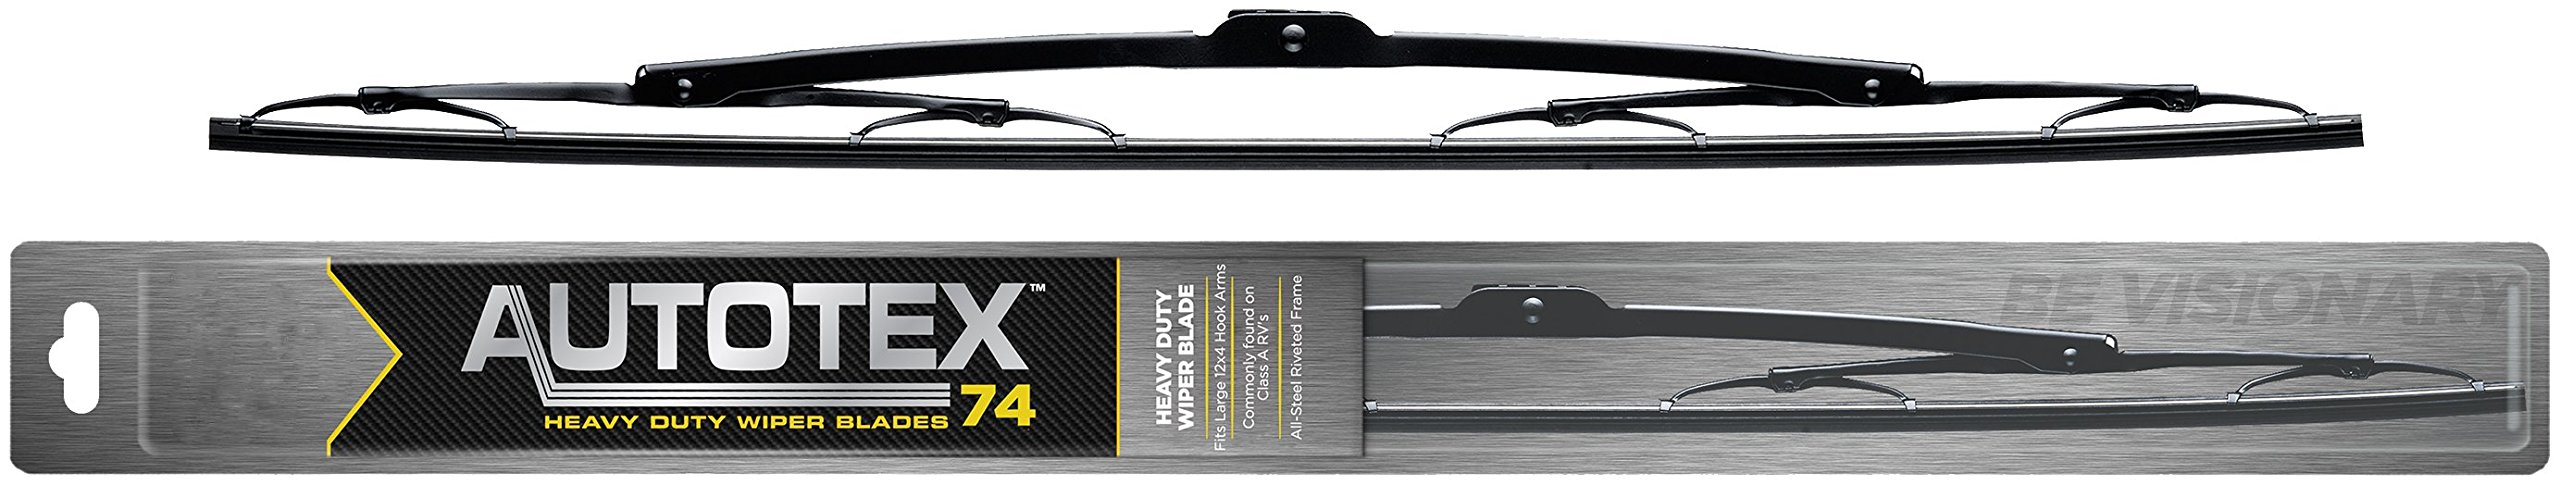 AutoTex Heavy Duty 74-30 74 Series 30'' Wiper Blade